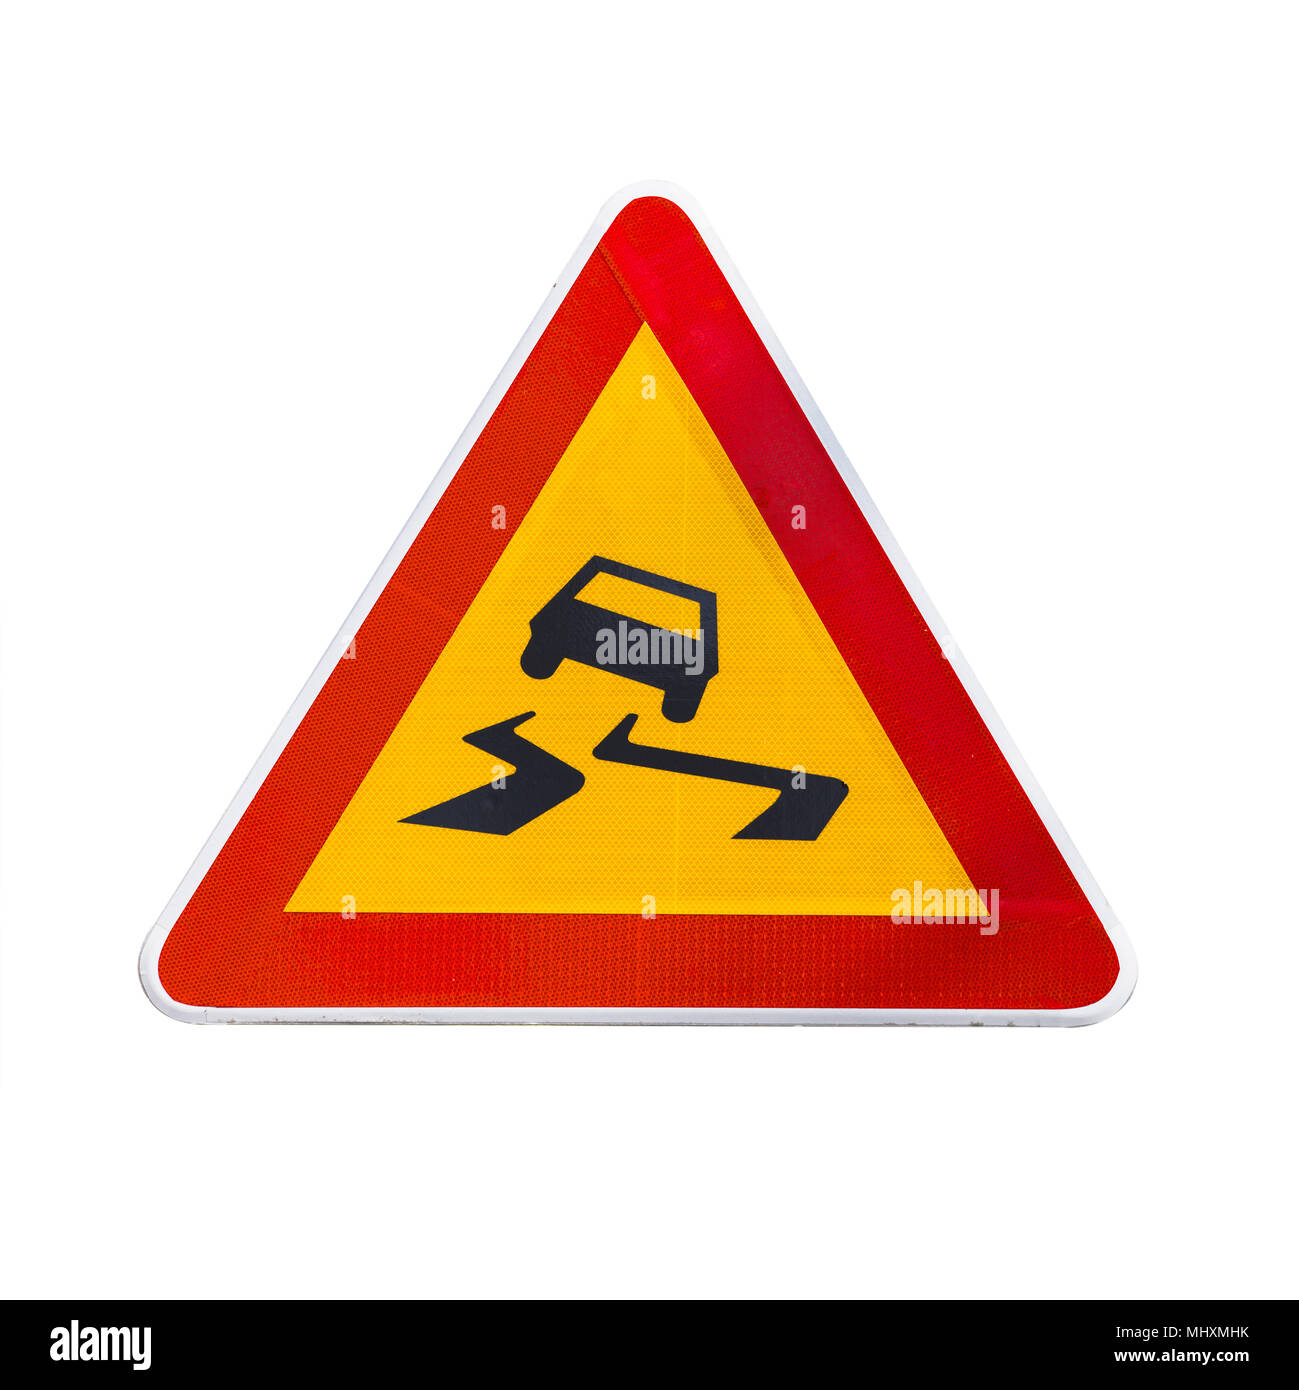 Slippery road, warning triangle road sign isolated on white background - Stock Image